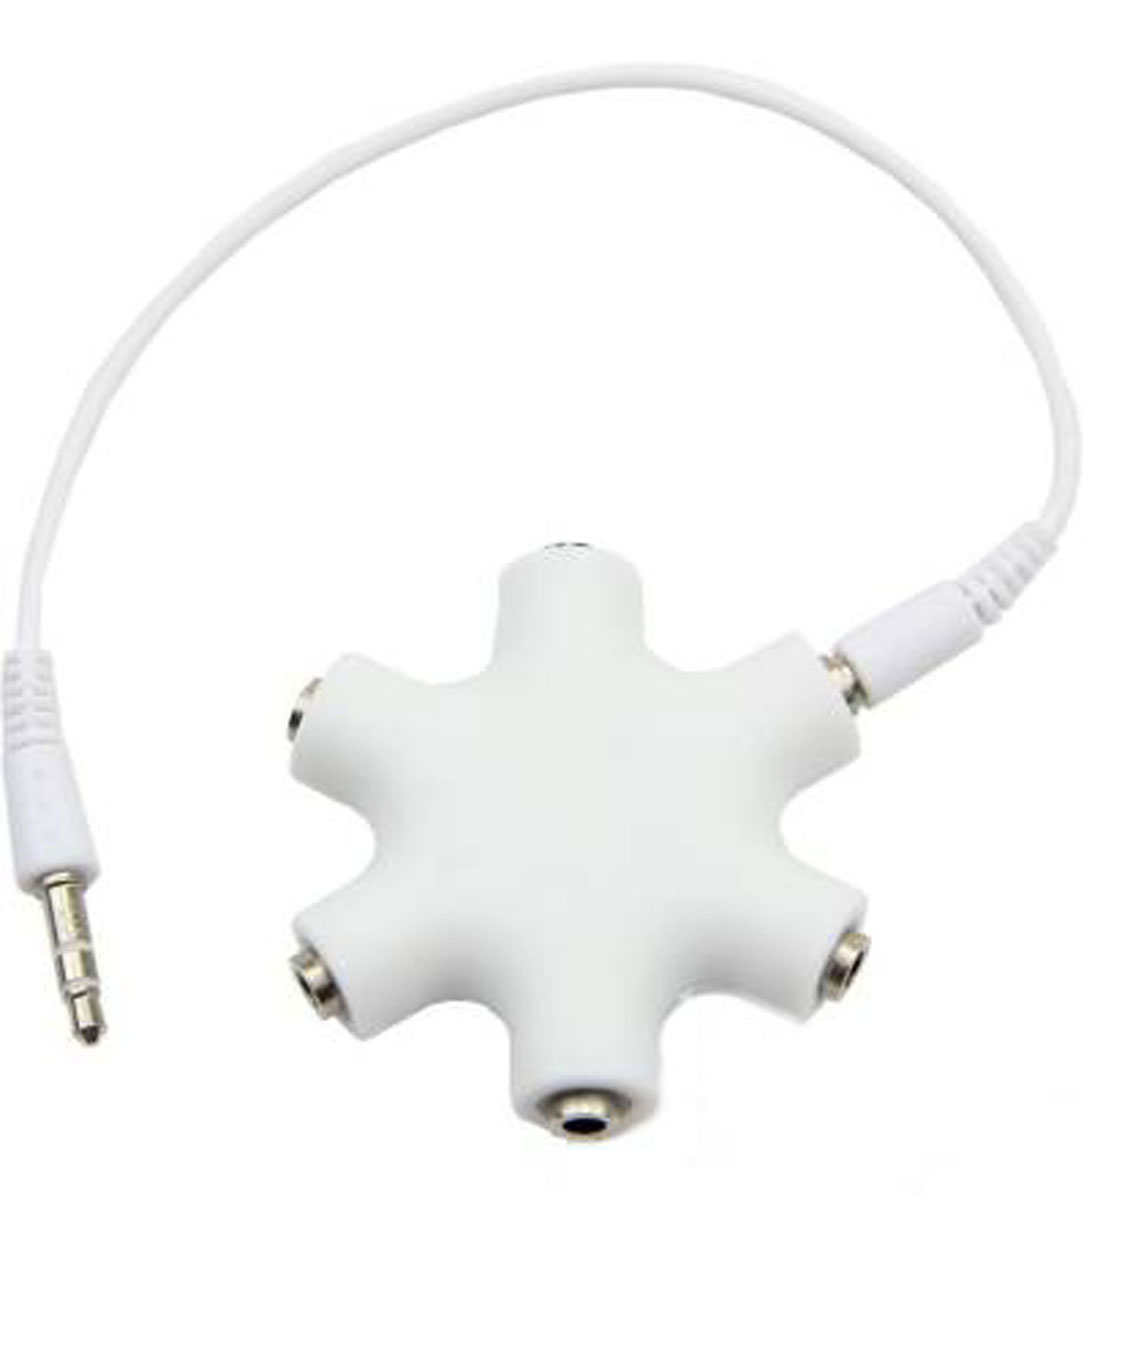 3.5MM STEREO AUDIO SPLITTER ADAPTER HEADSET HEADPHONE EARPHONE HUB WITH AUX CABLE HEADPHONE SPLITTER (COMPATIBLE WITH MOBILE, WHITE)